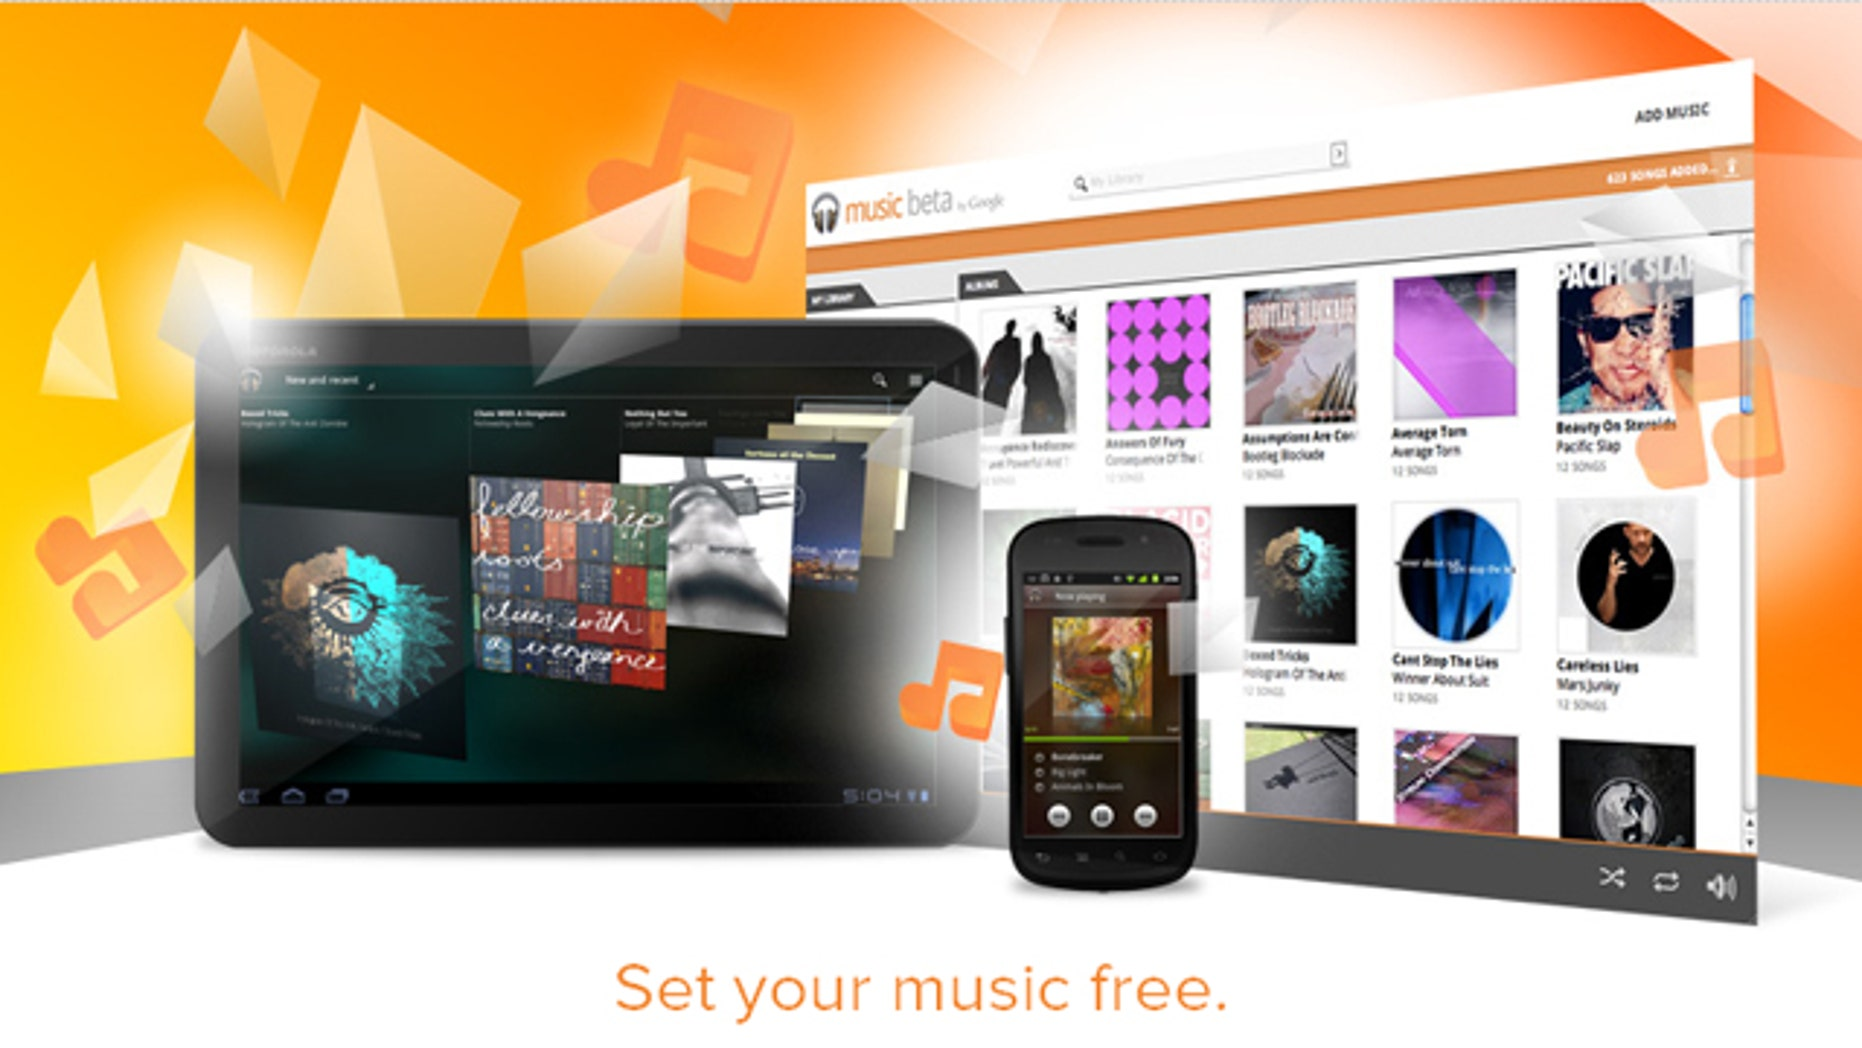 The Google Music store will compete with Apple's iTunes and other digital music services from the likes of Amazon and Spotify.